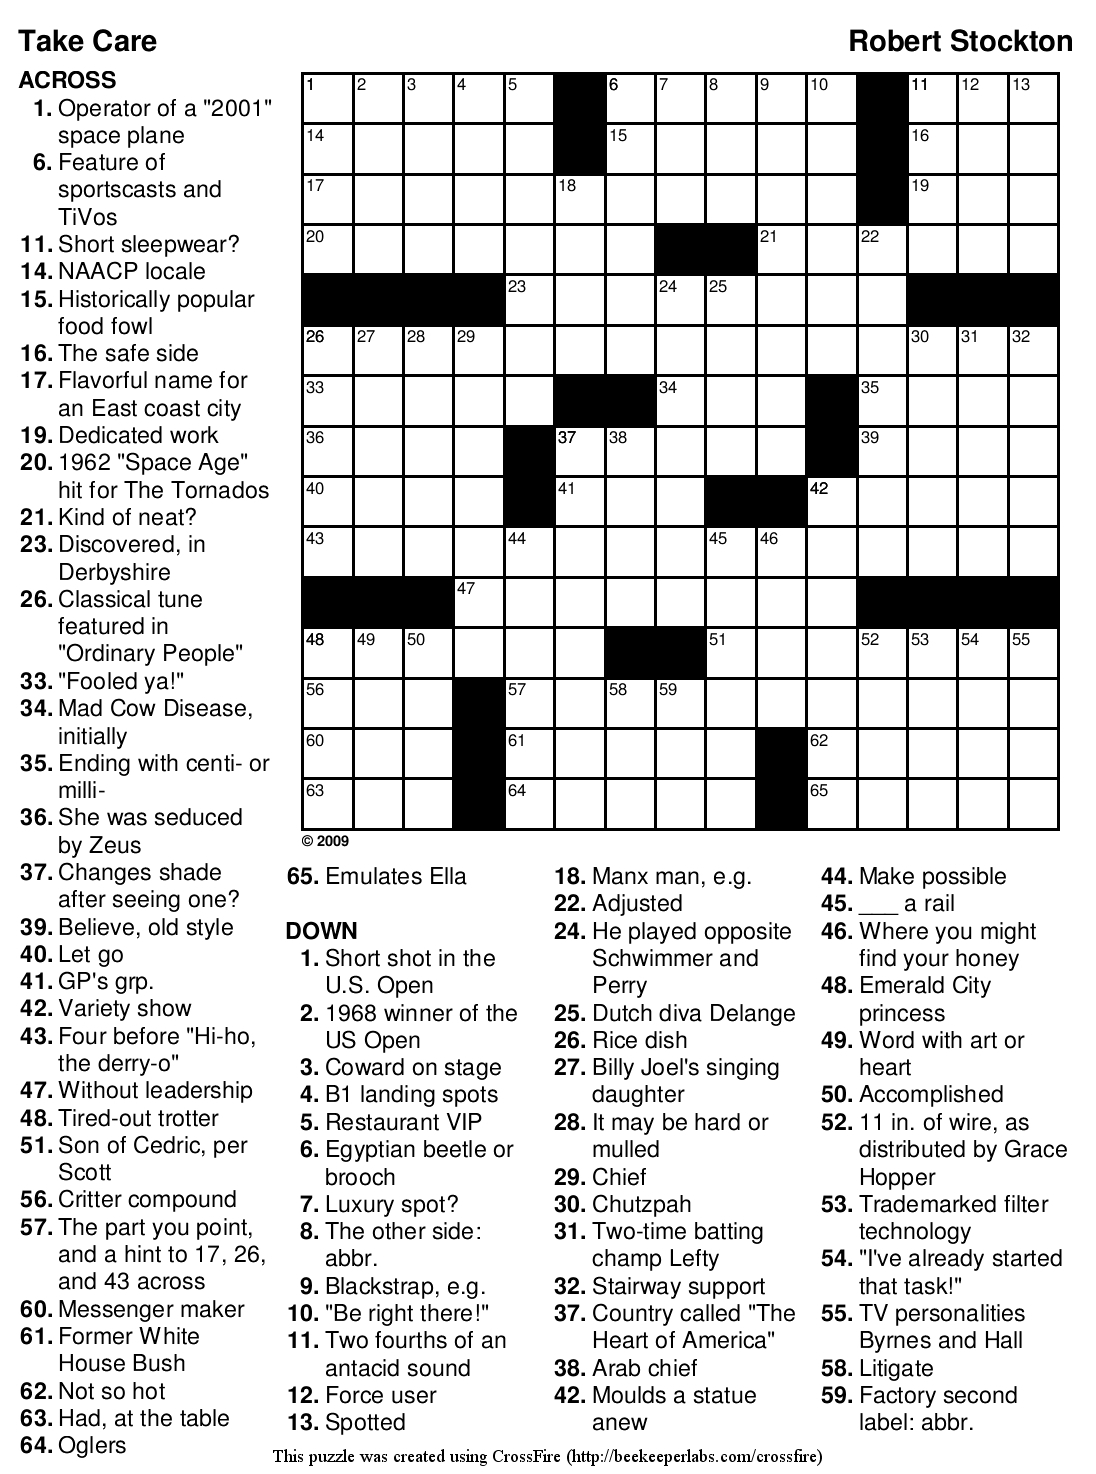 Printable Easy Sports Crossword Puzzles | Download Them Or Print - Sports Crossword Puzzles Printable